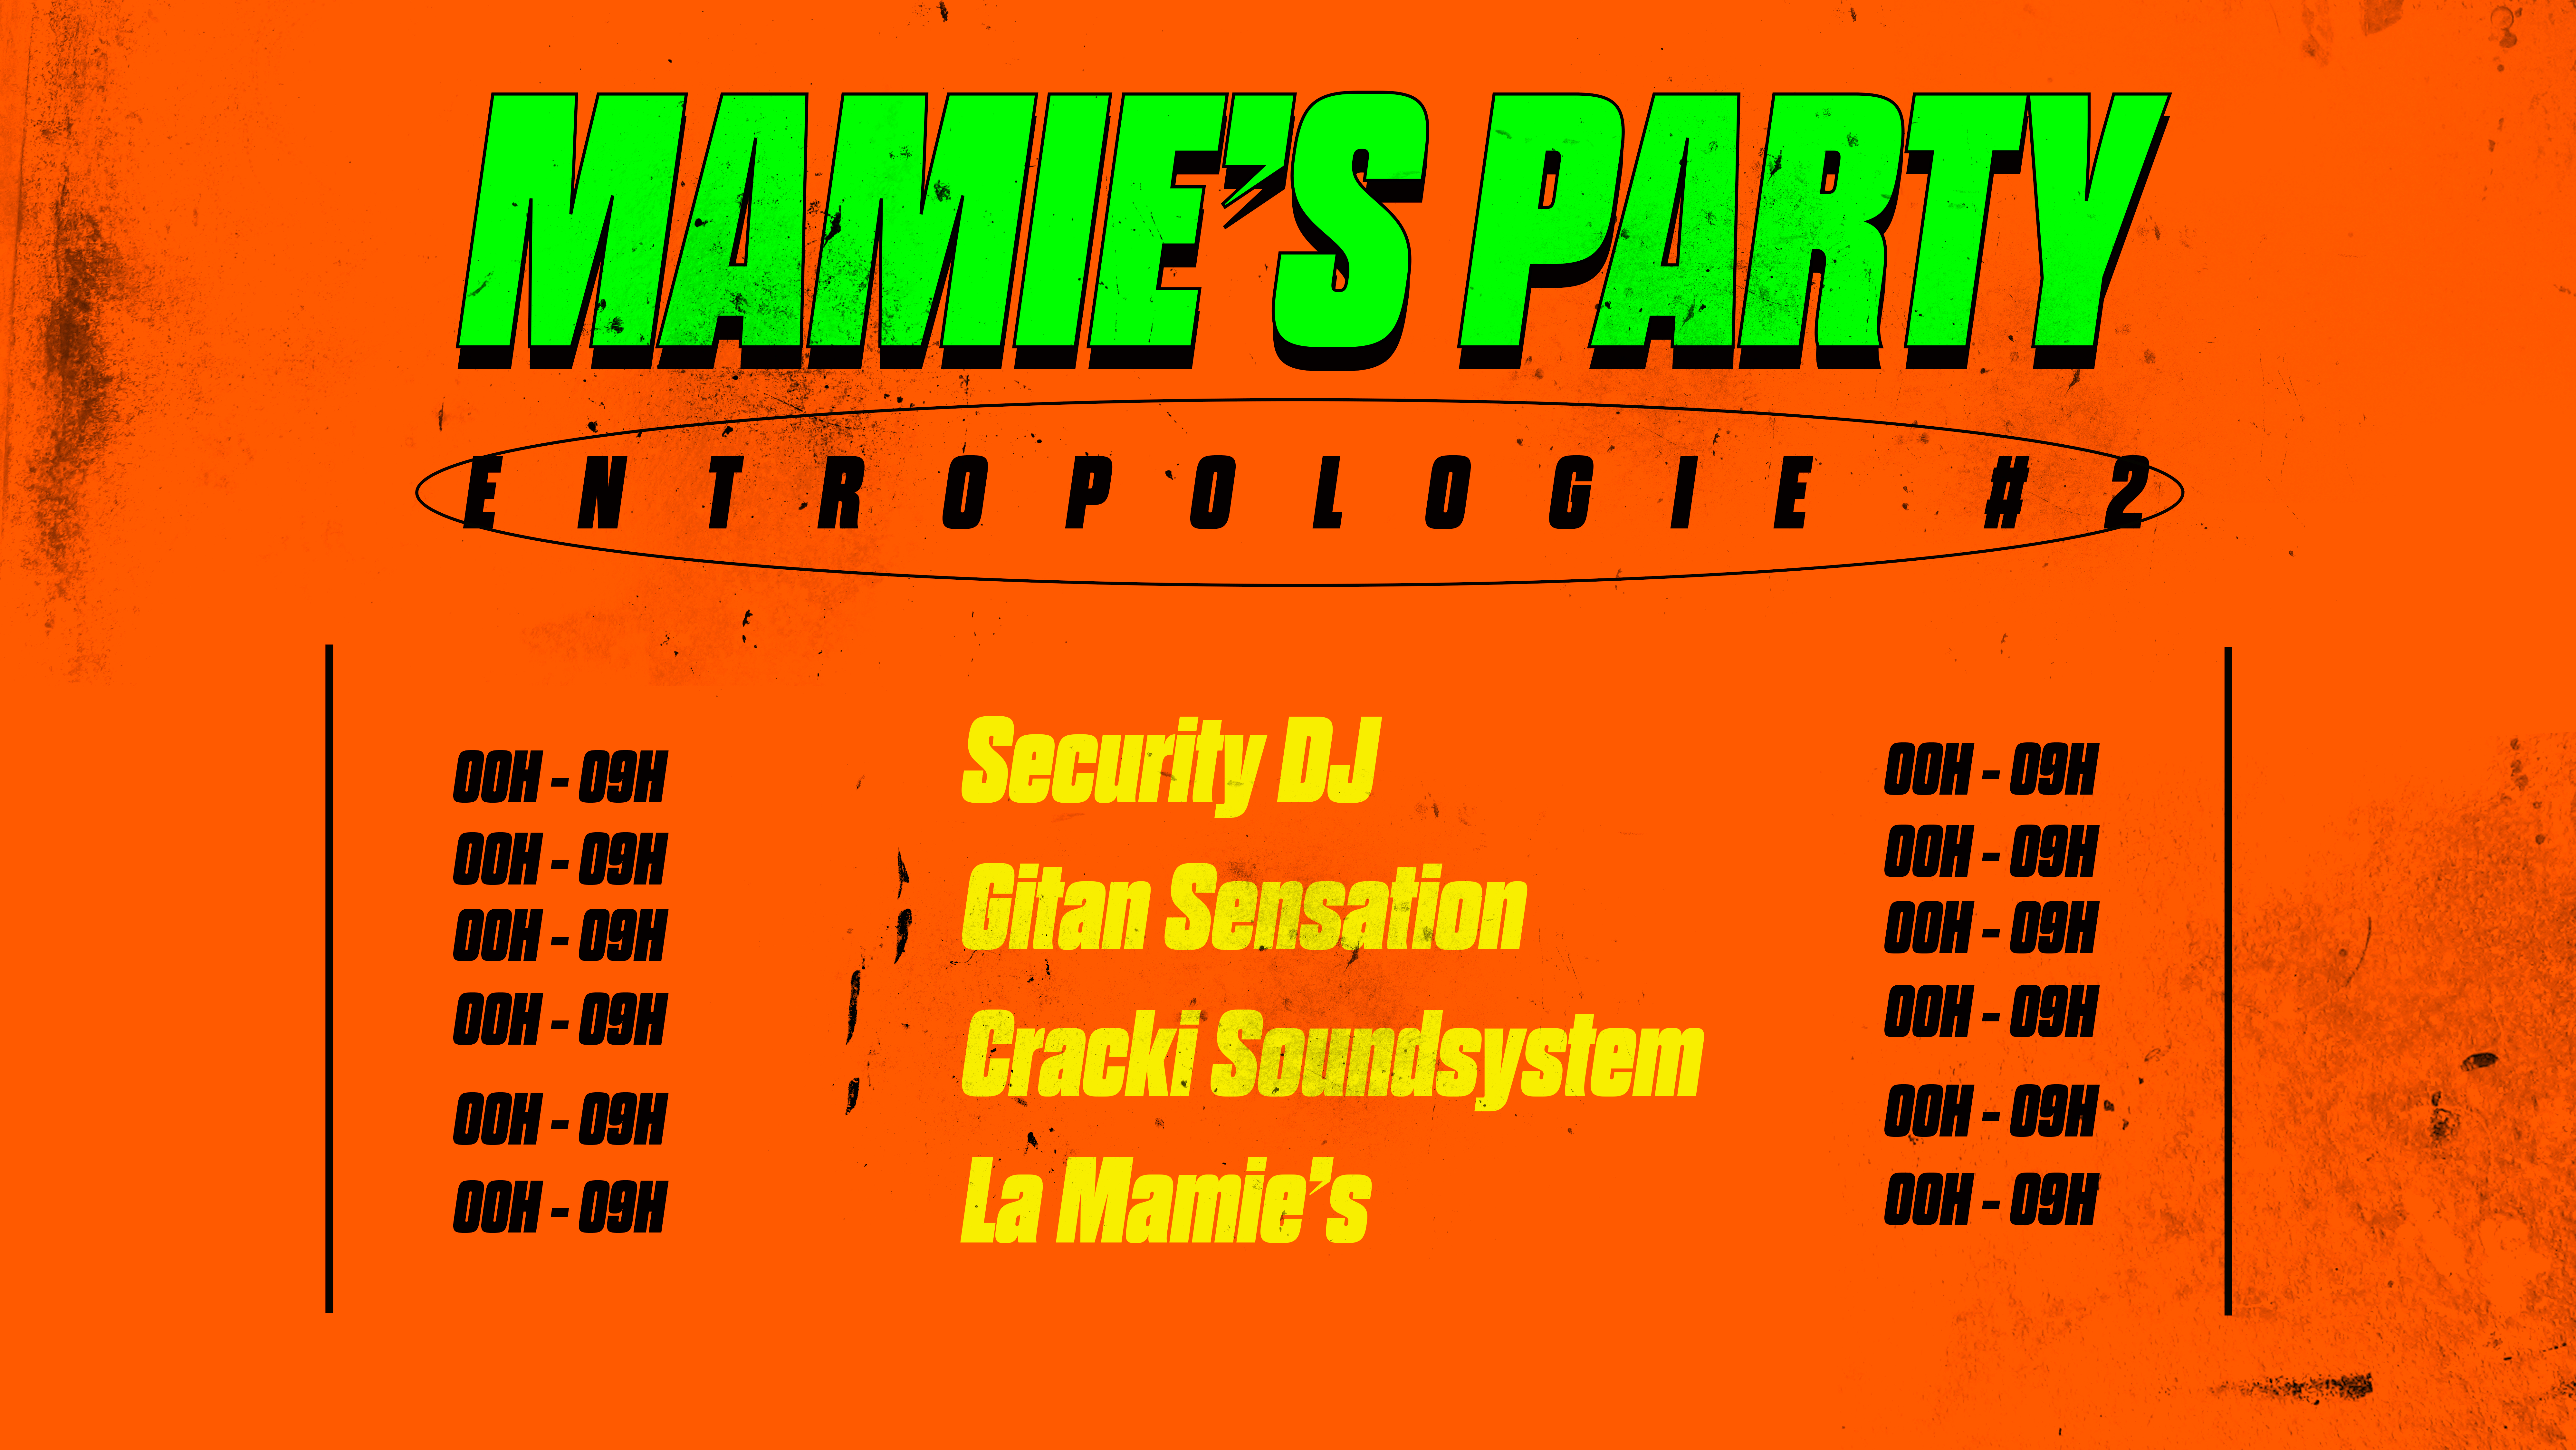 Mamie's Party : Entrepologie #2